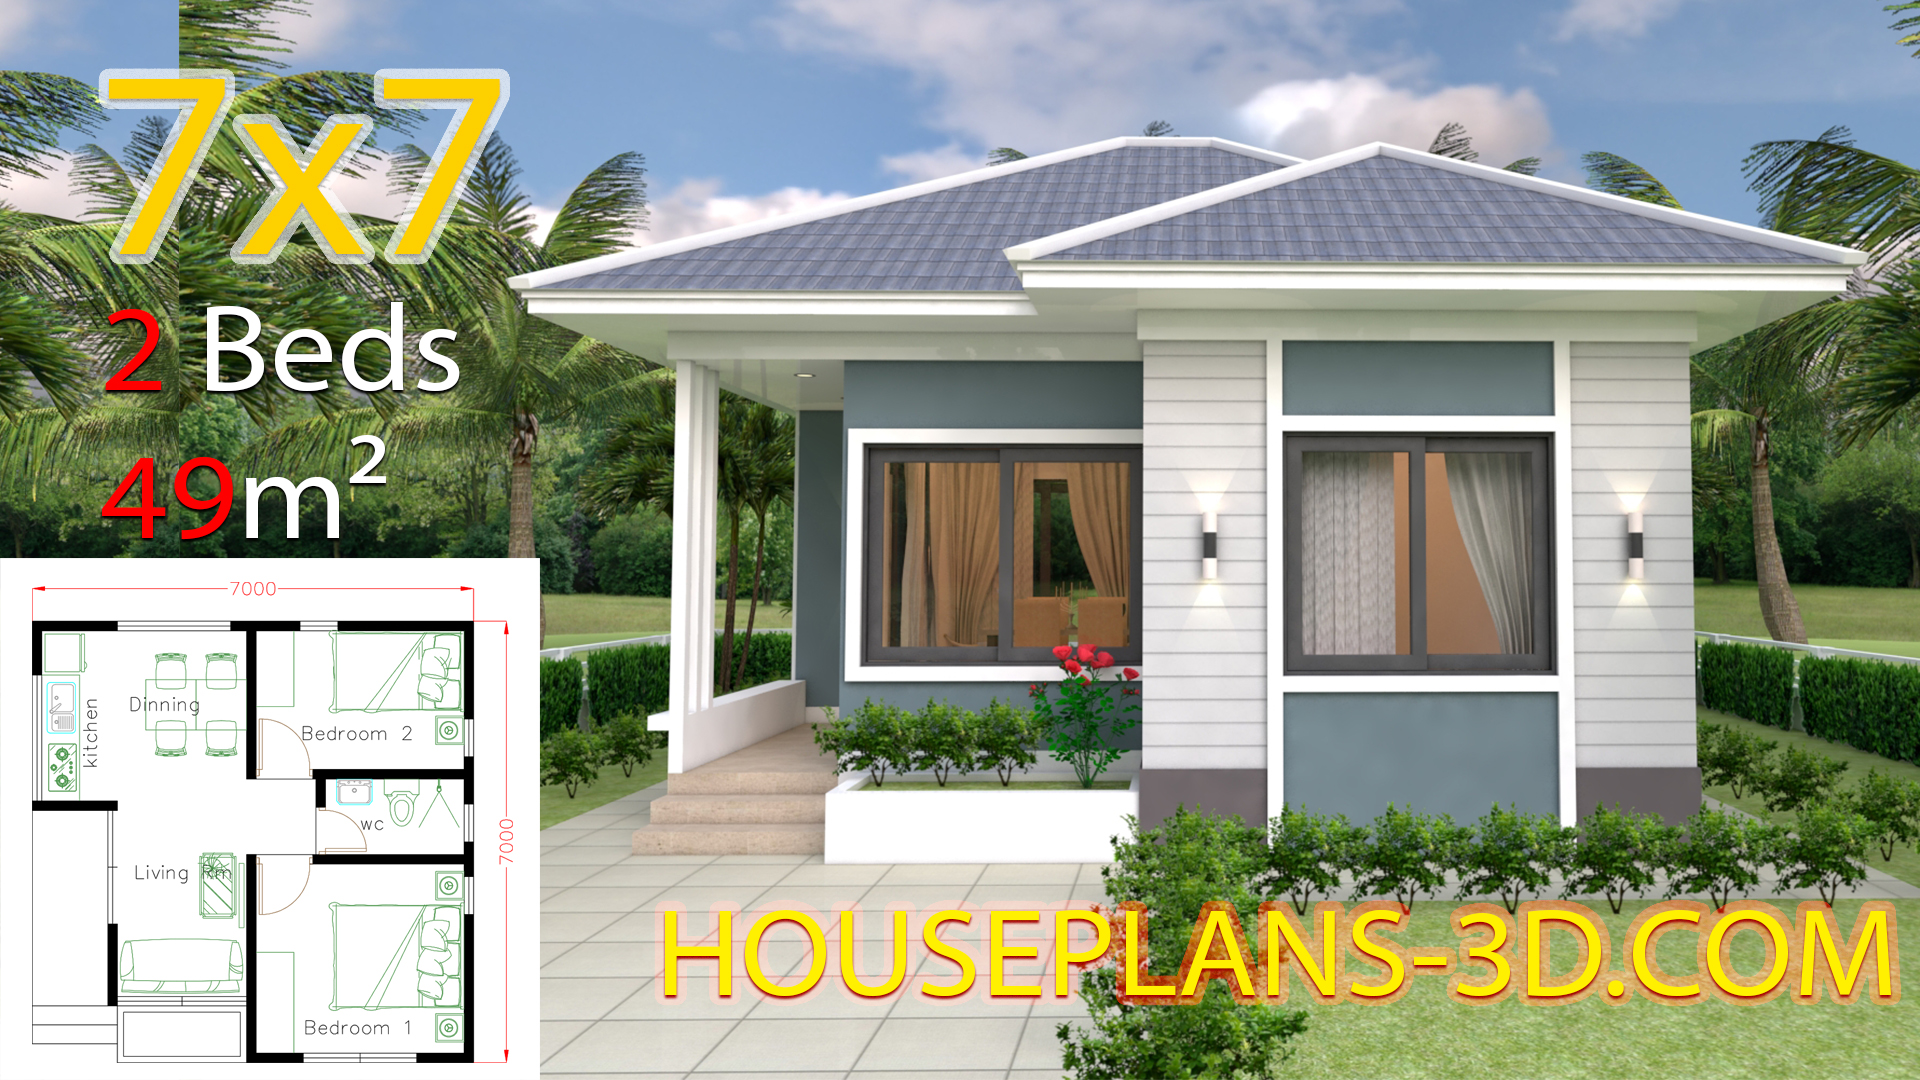 House Design 7x7 with 2 Bedrooms full plans - House Plans 3D